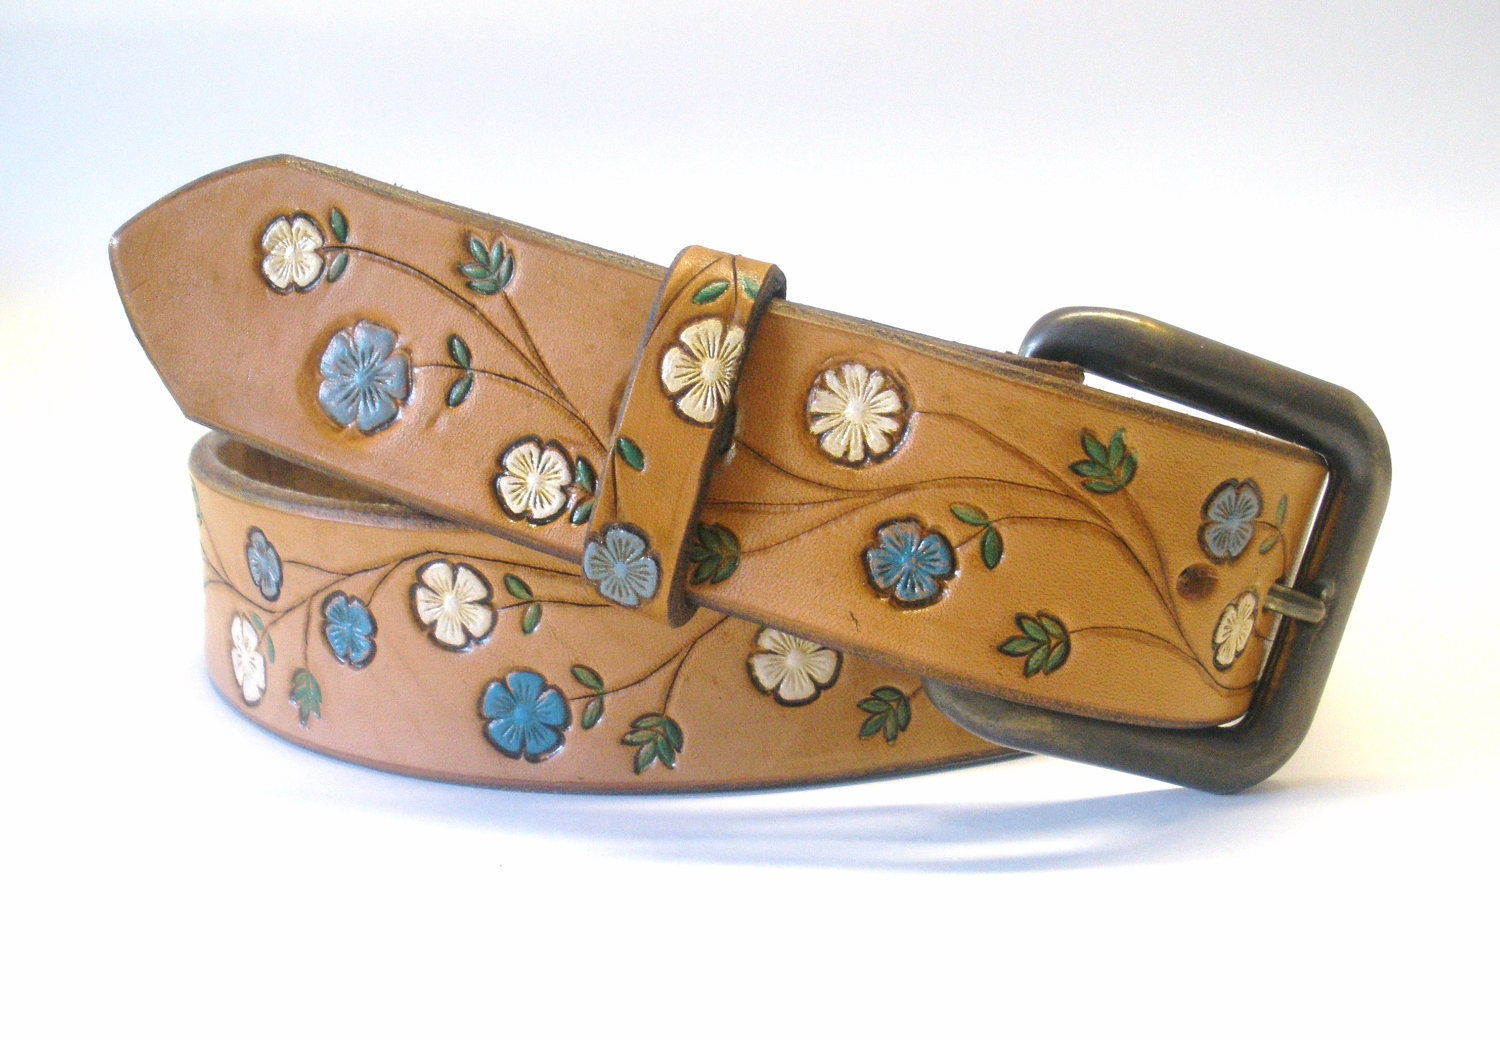 Tan Brown Leather Belt with Blue and Cream Hand Stamped Flowers Retro Boho Hippie Women's Leather Belt - BirdhouseDesigns